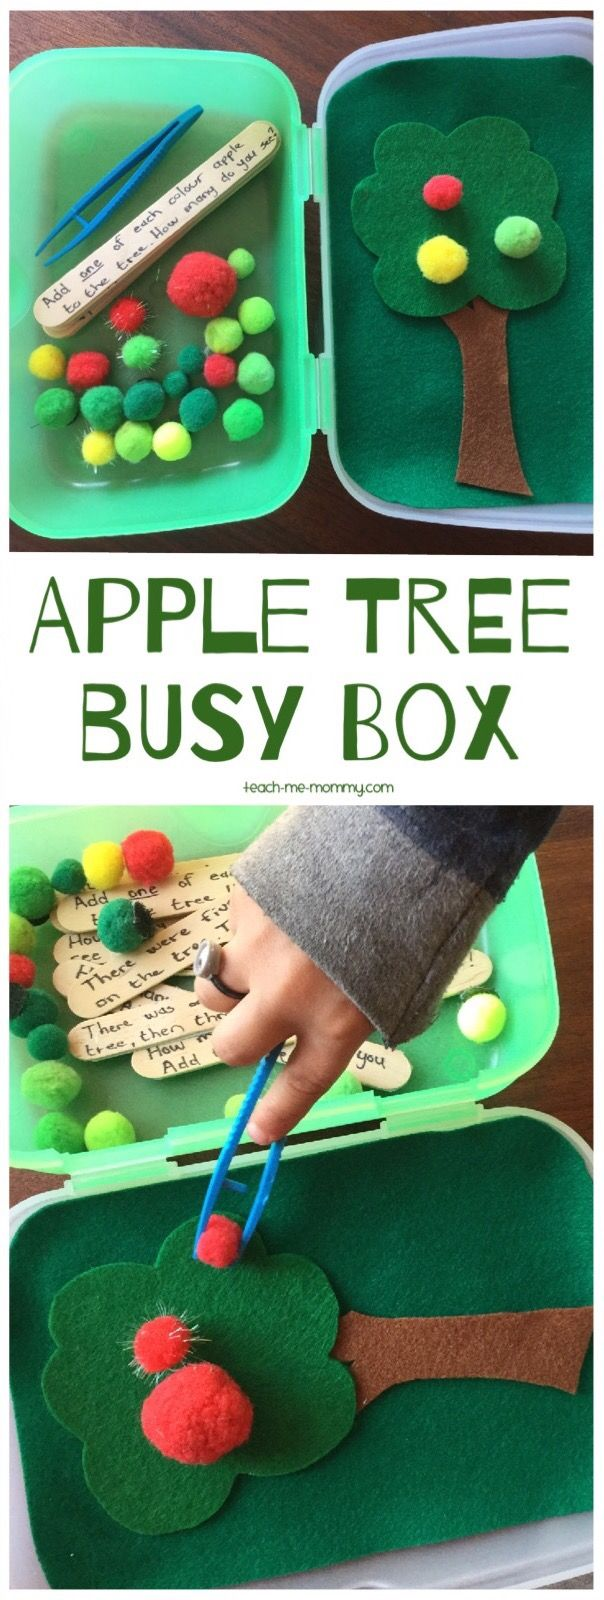 Apple Tree Busy Box. A handy travel-sized busy box that works on following instructions, fine motor skills, counting and visual perception too! Great for kids of all ages!